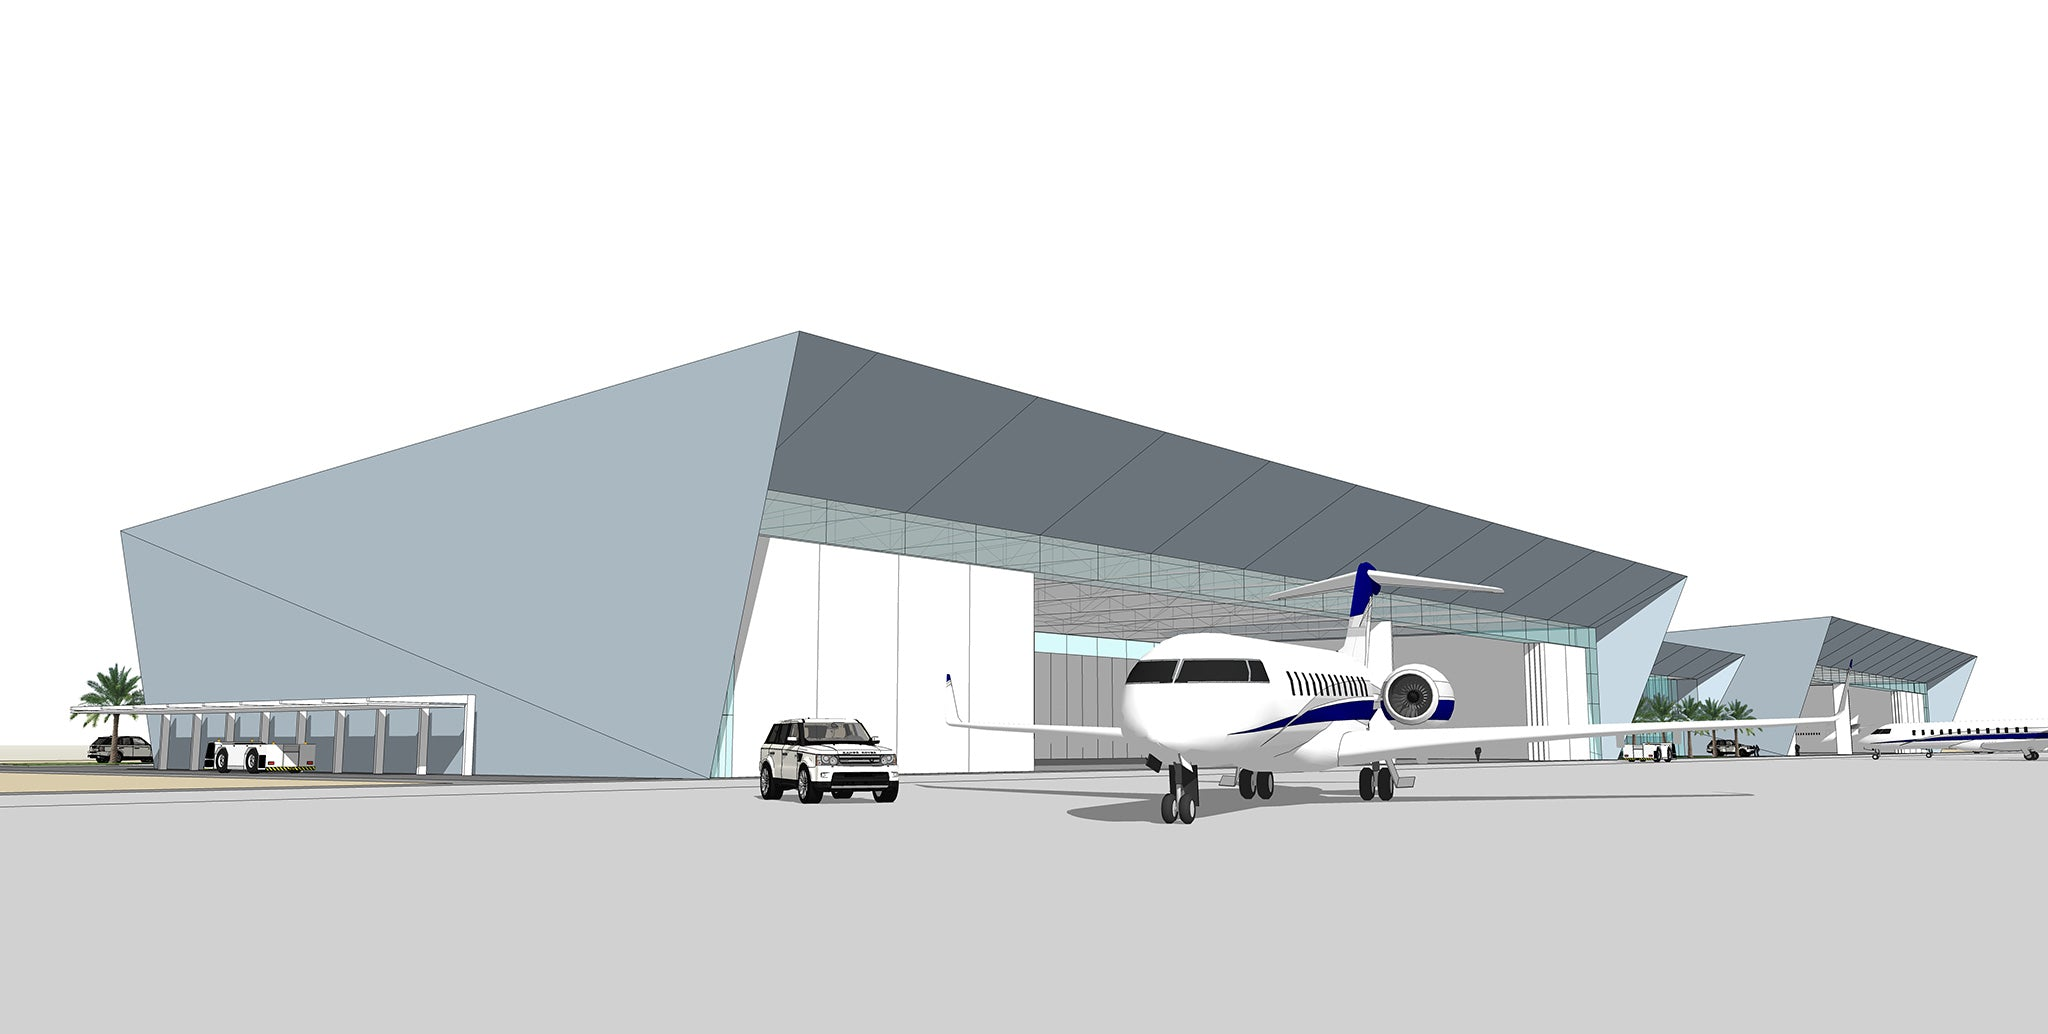 XJET Dubai - Coming Soon